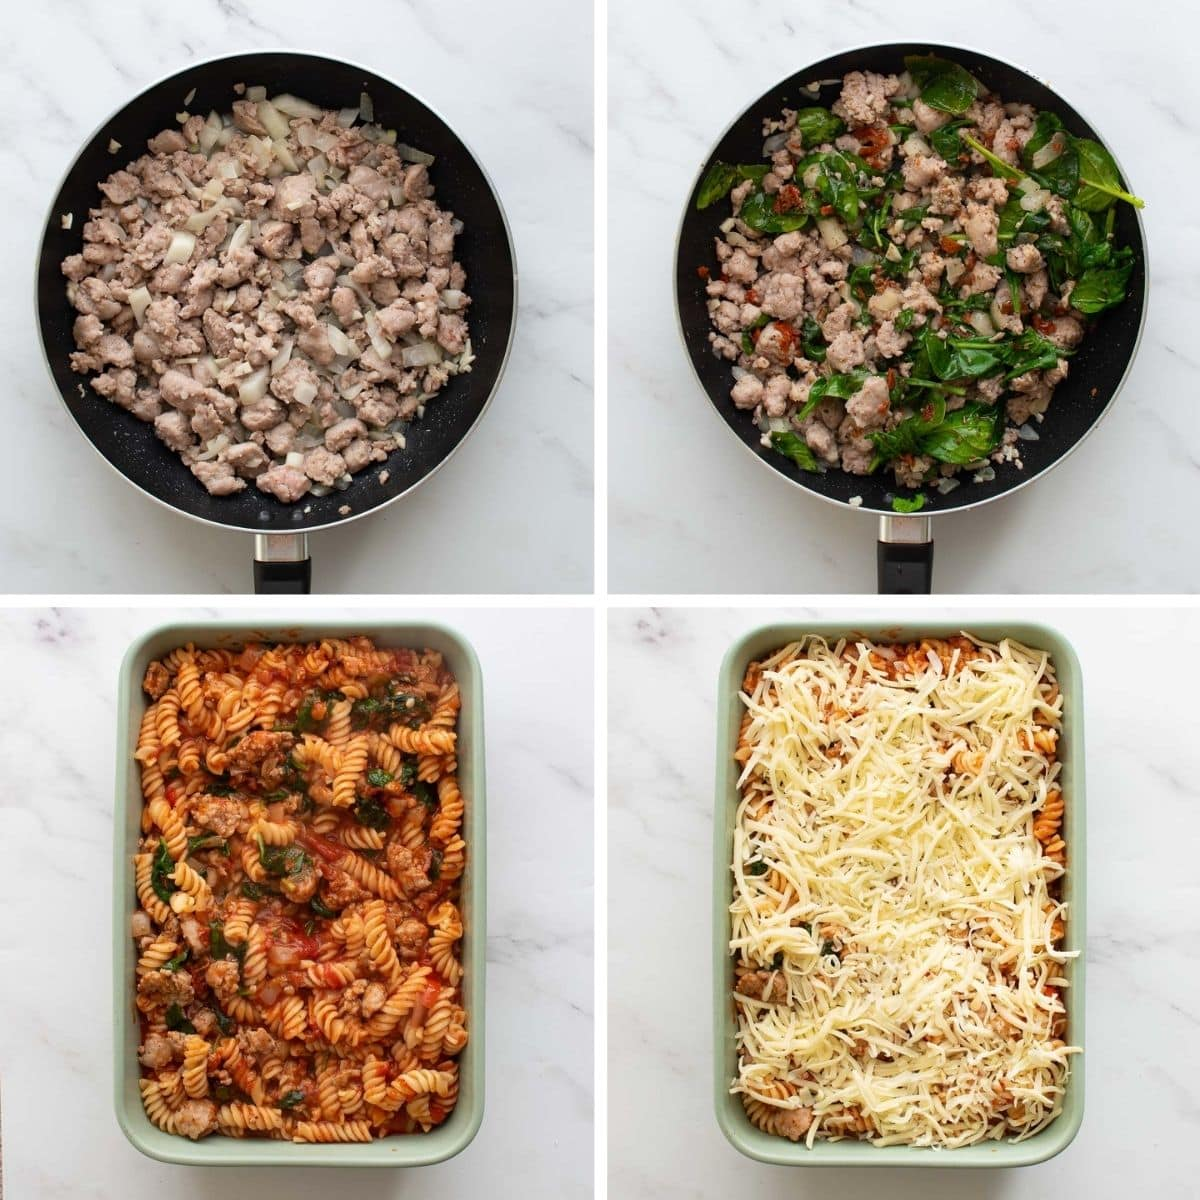 Step by step images showing how to make Sausage Pasta Bake.